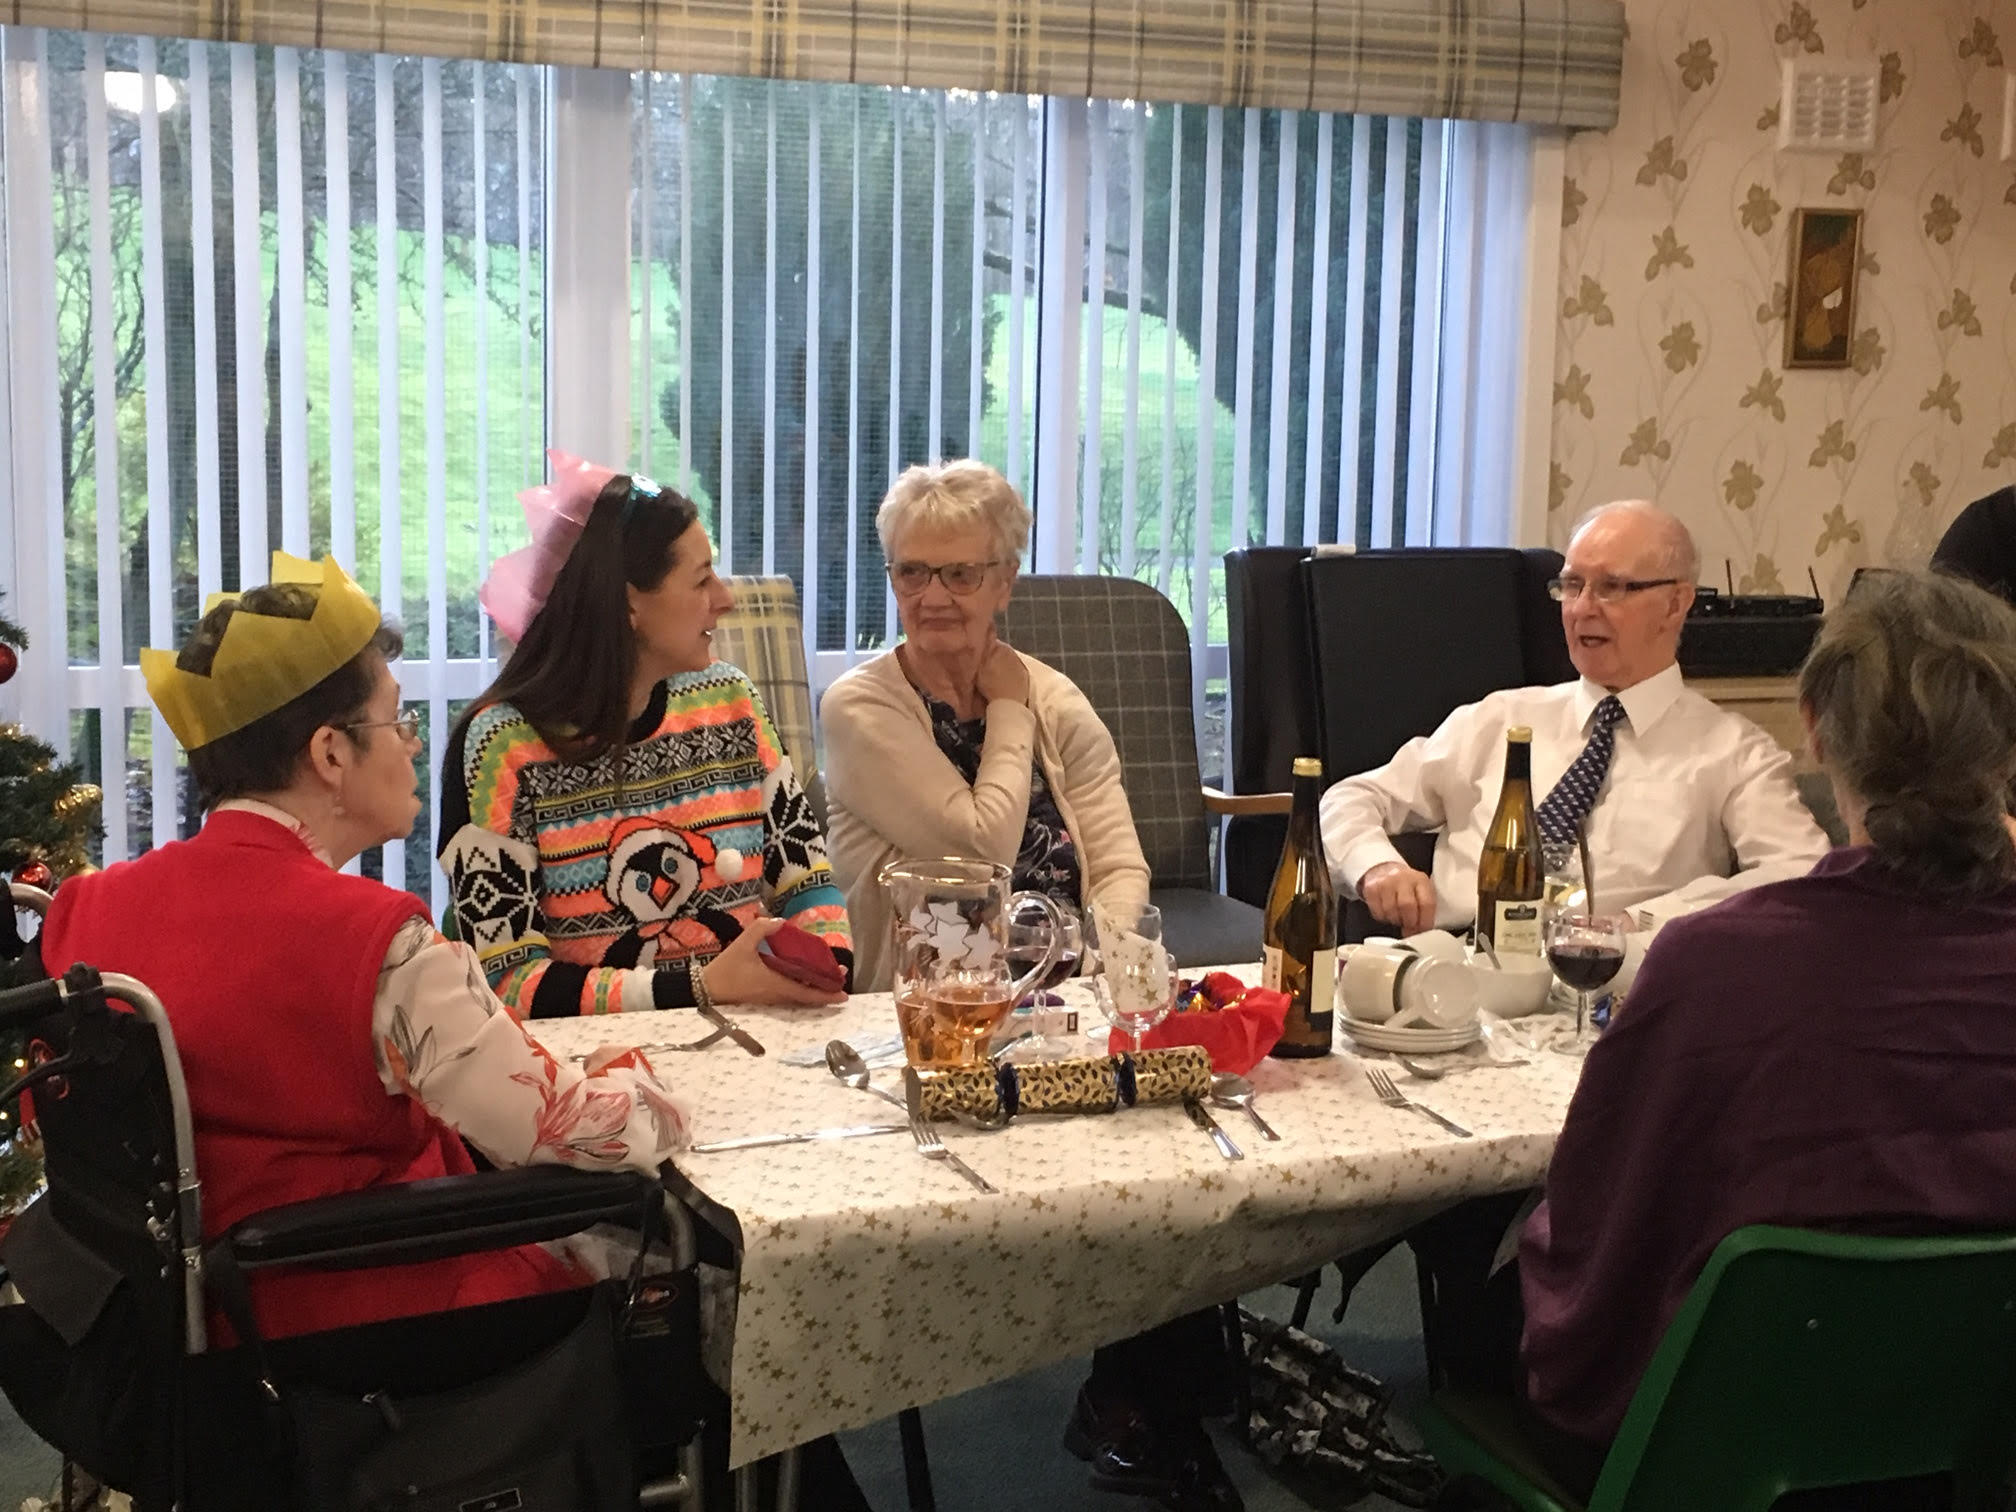 Tenants of Dean Court sitting around table chatting and enjoying the Christmas party